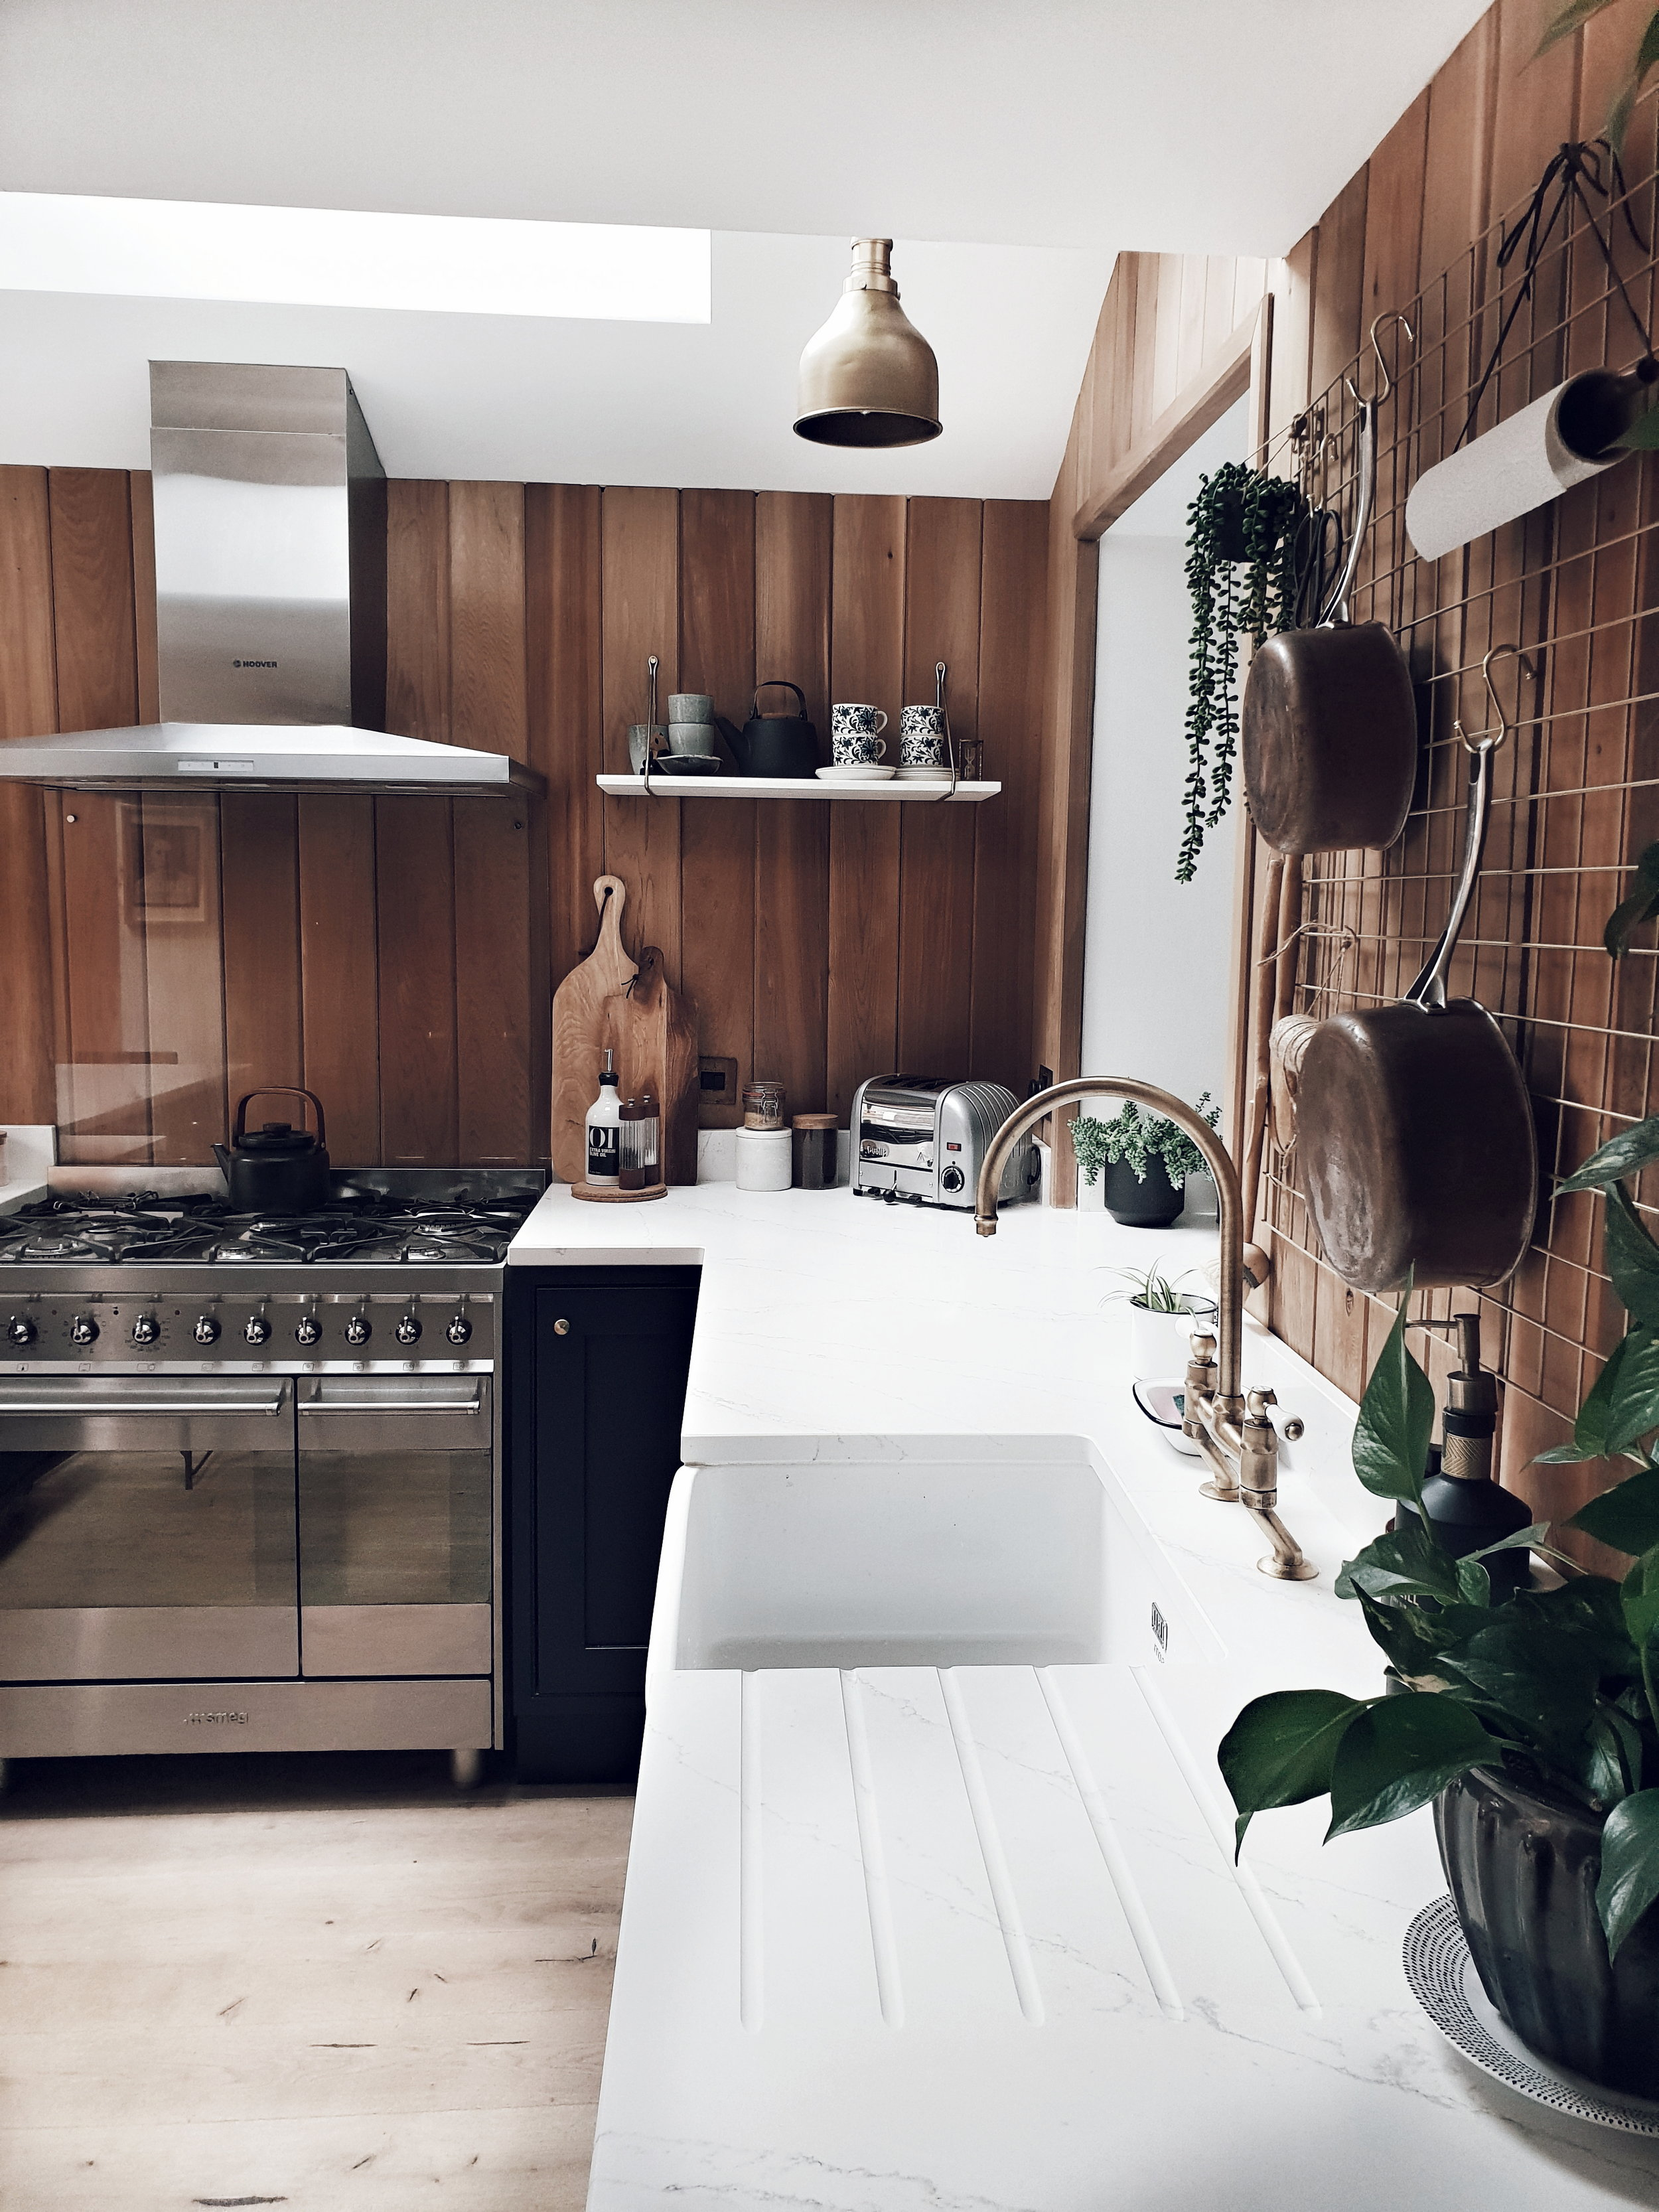 They chose a relatively low cost kitchen from DIY Kitchens and then added a luxe feel by upgrading the worktops